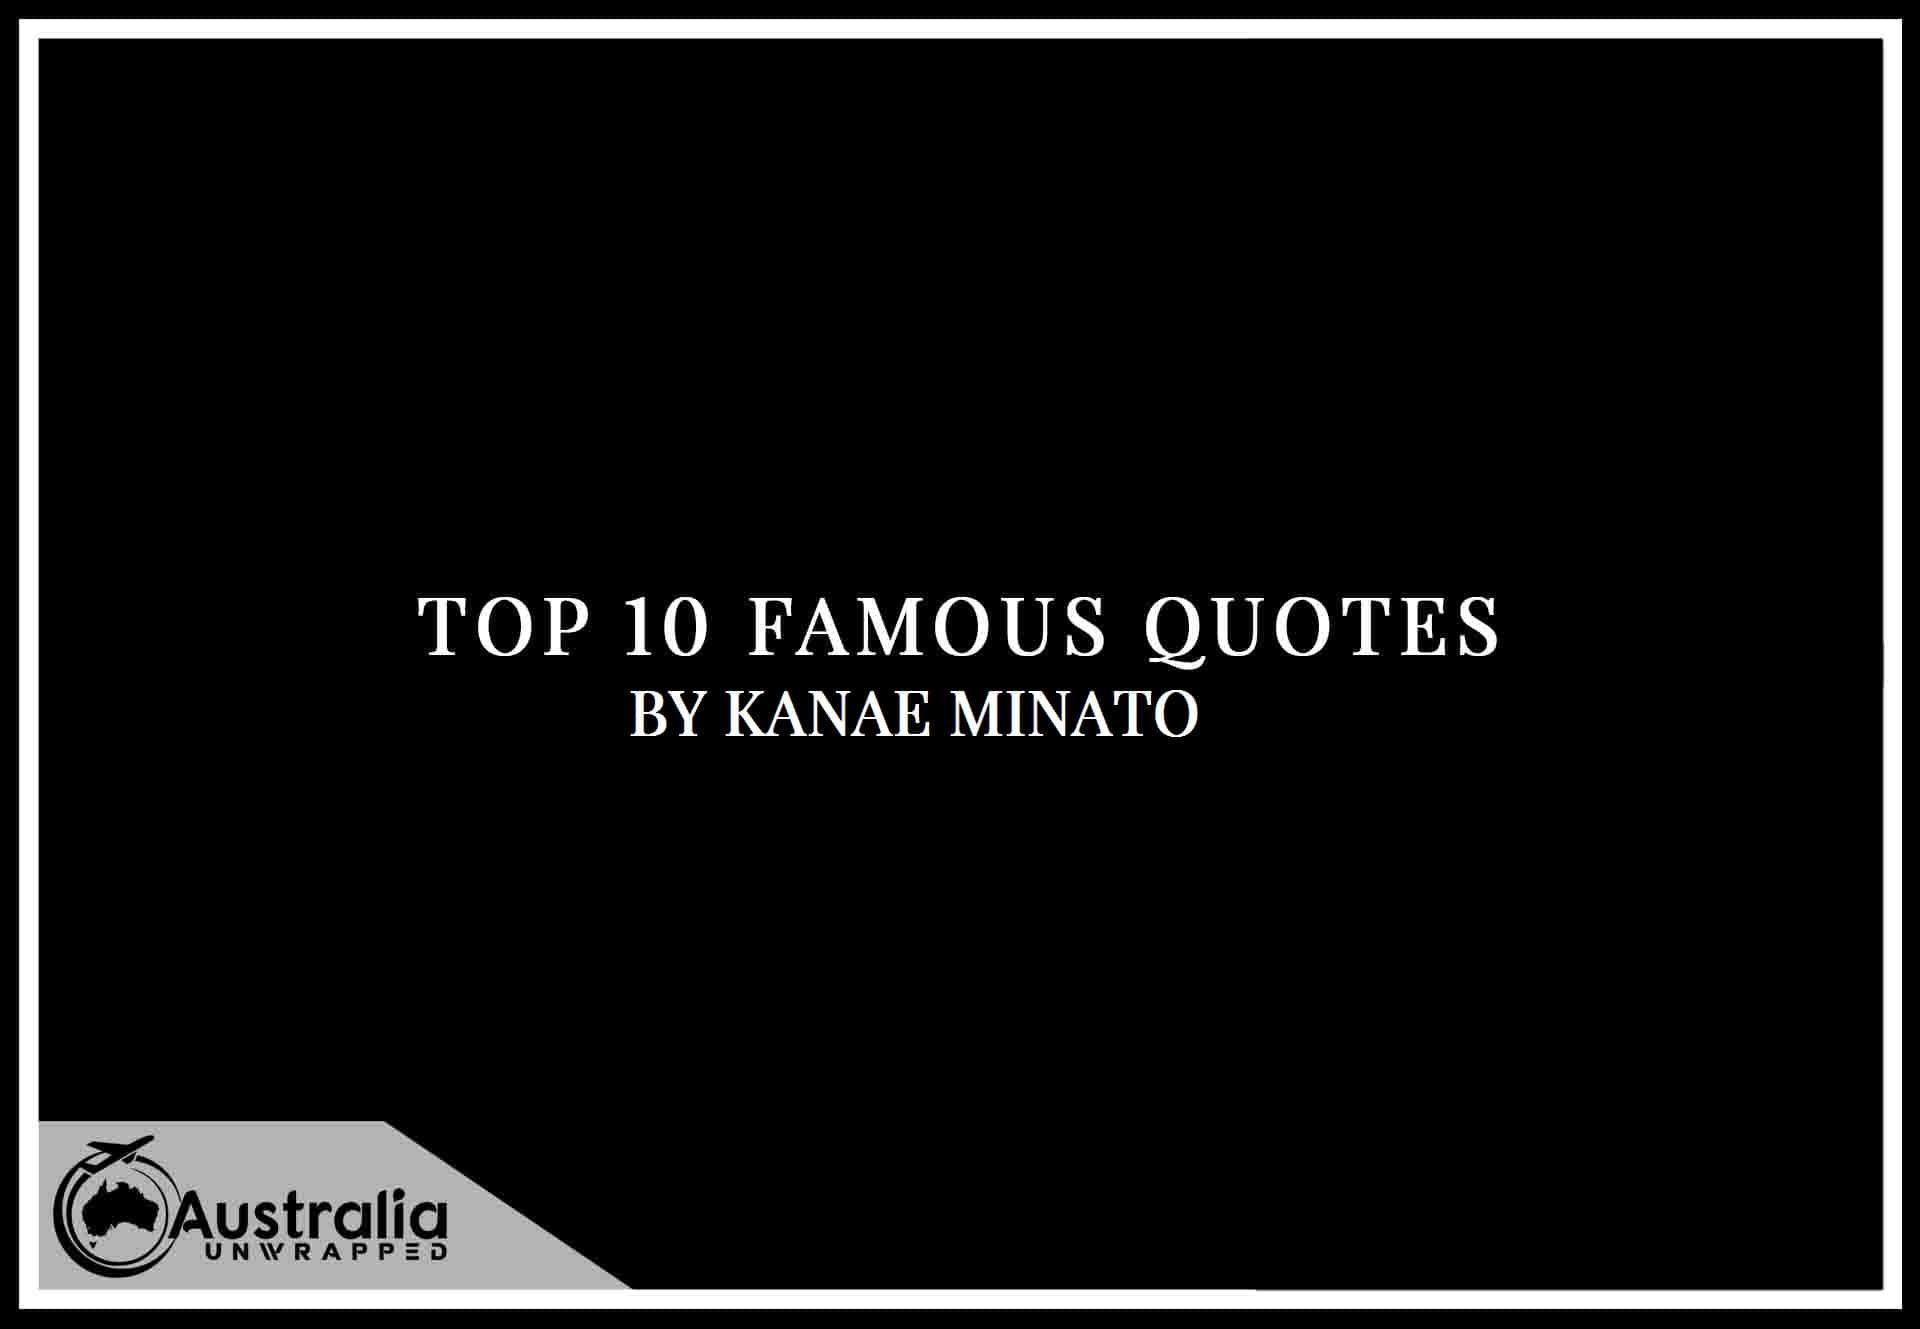 Kanae Minato's Top 10 Popular and Famous Quotes